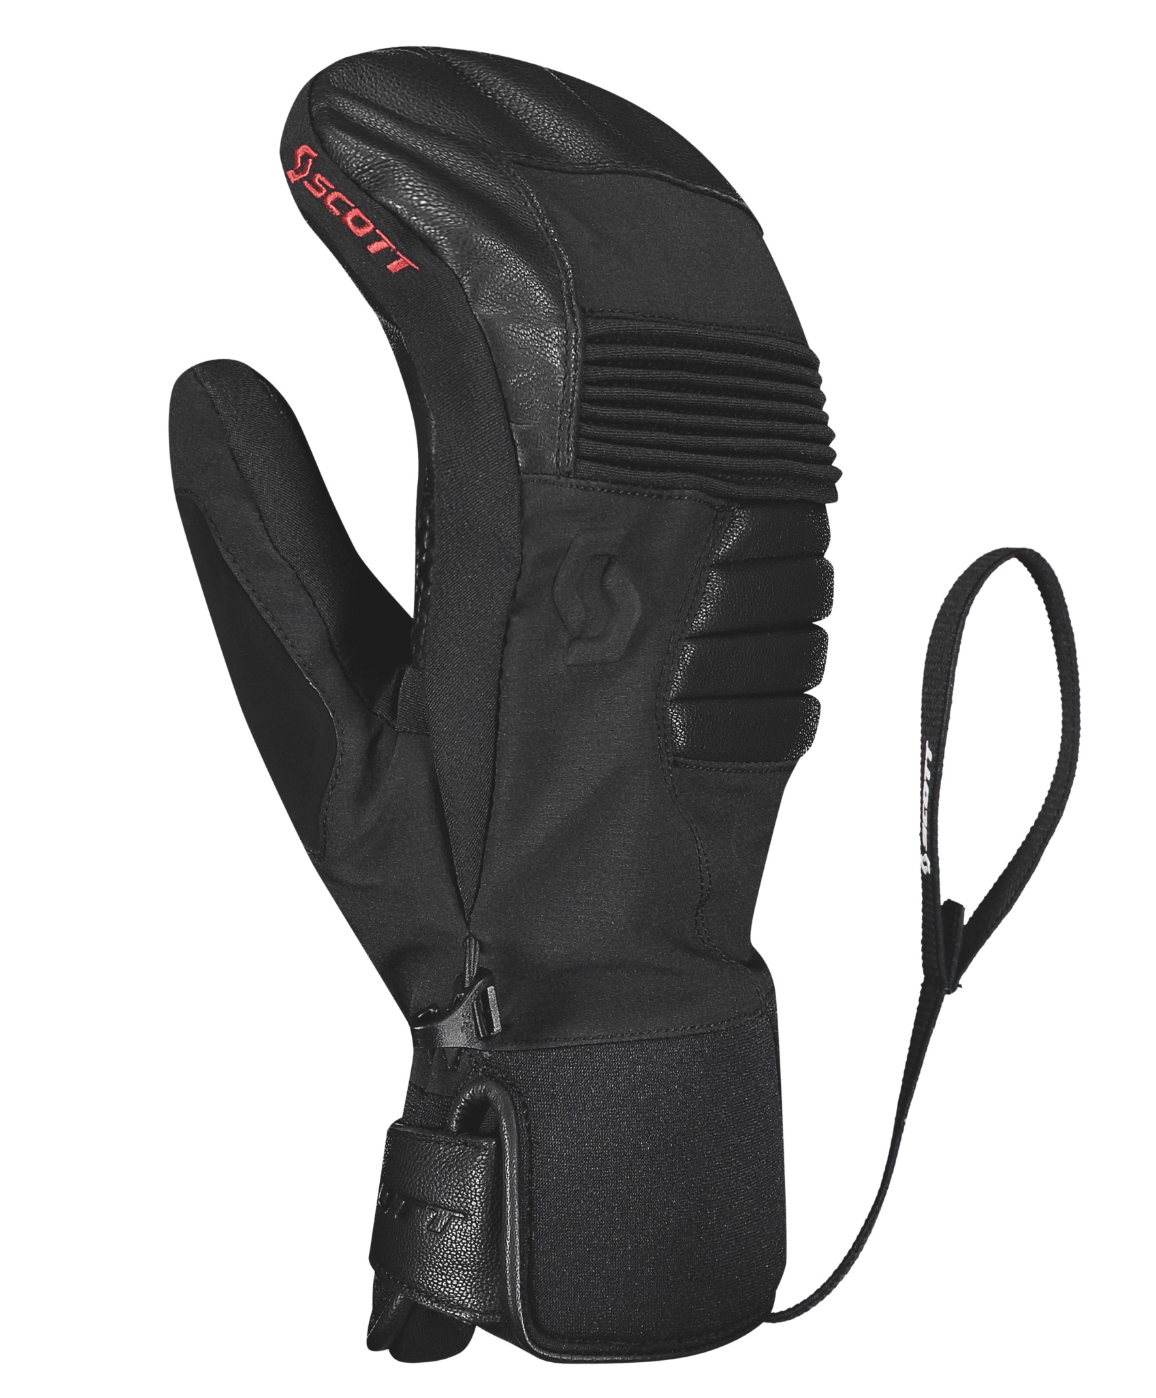 Scott Ultimate Plus Mitten